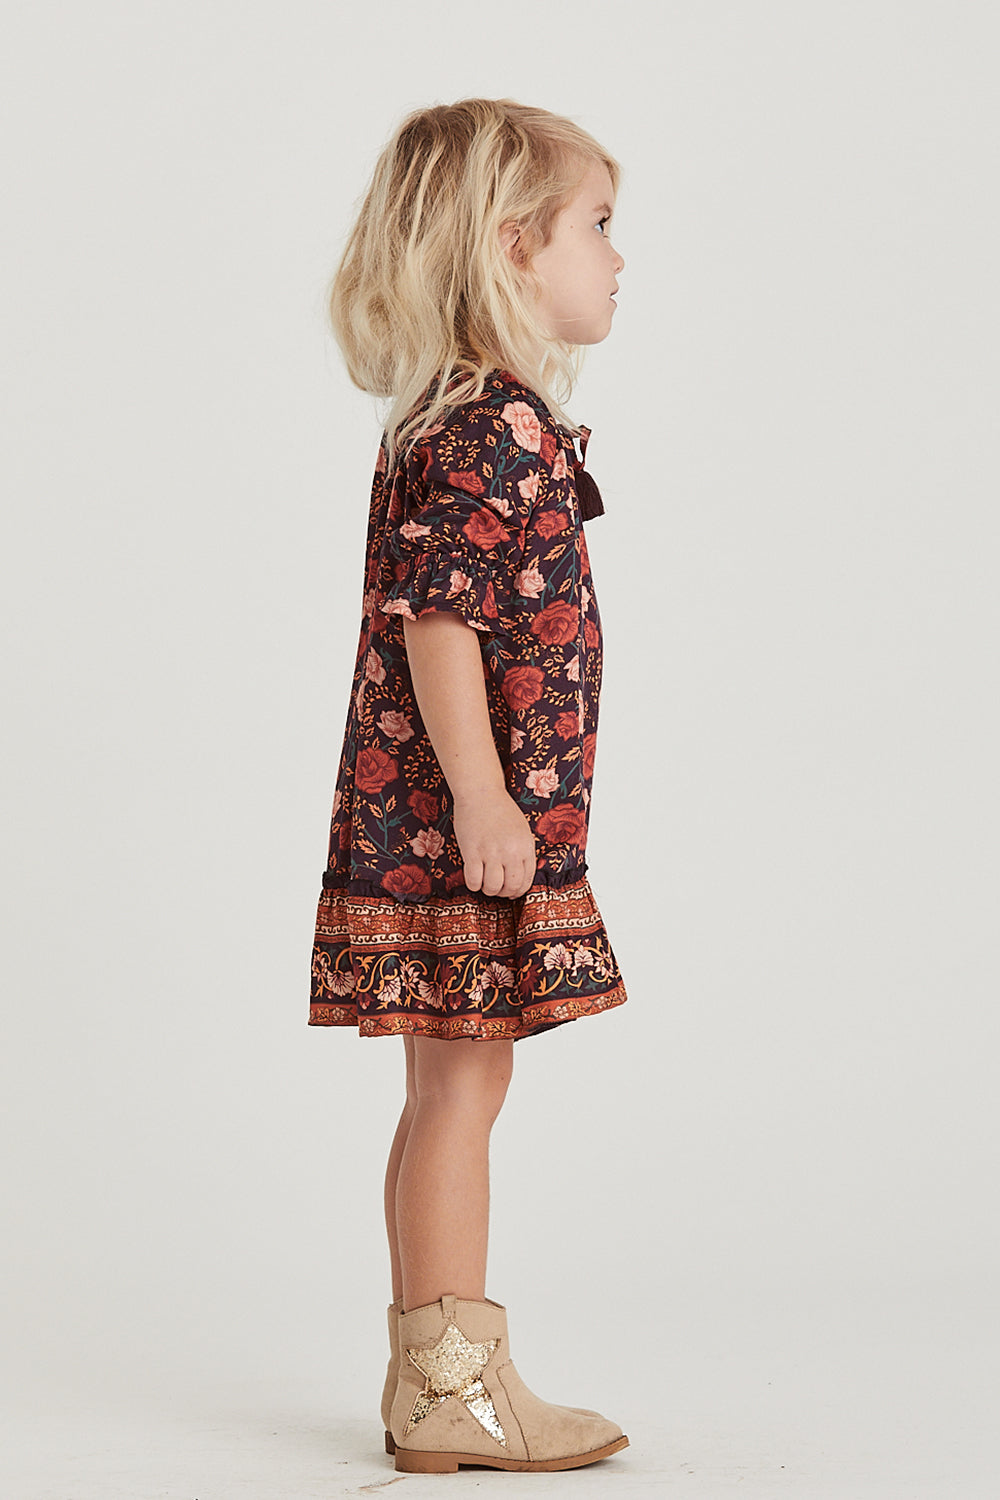 Bella Rosa Kiddies Dress in Midnight